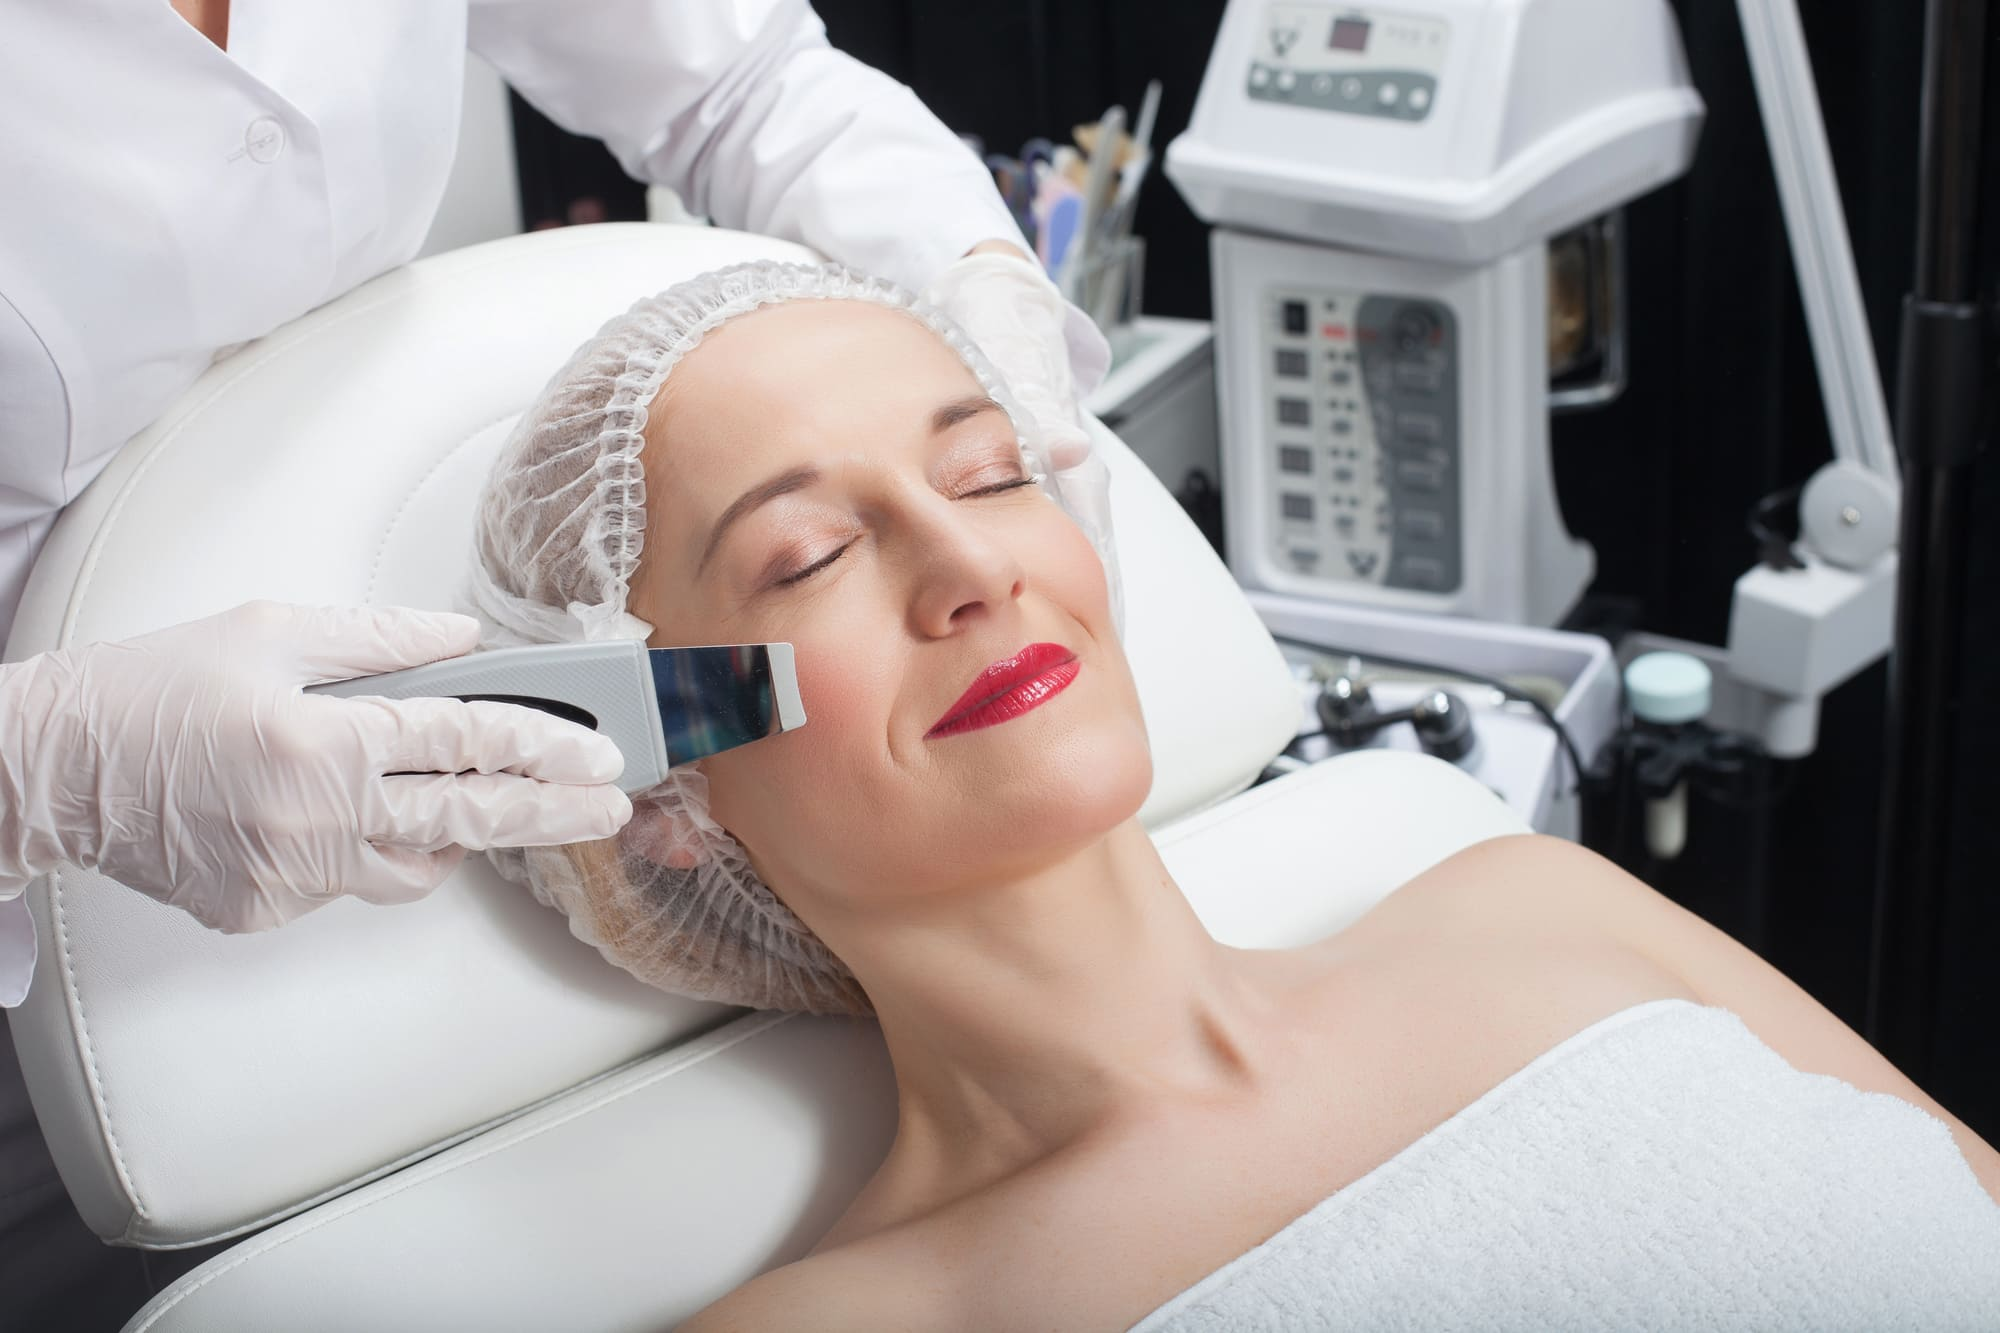 Close up of arms of beautician making laser treatment on female face. The woman is lying and smiling. Her eyes are closed with pleasure